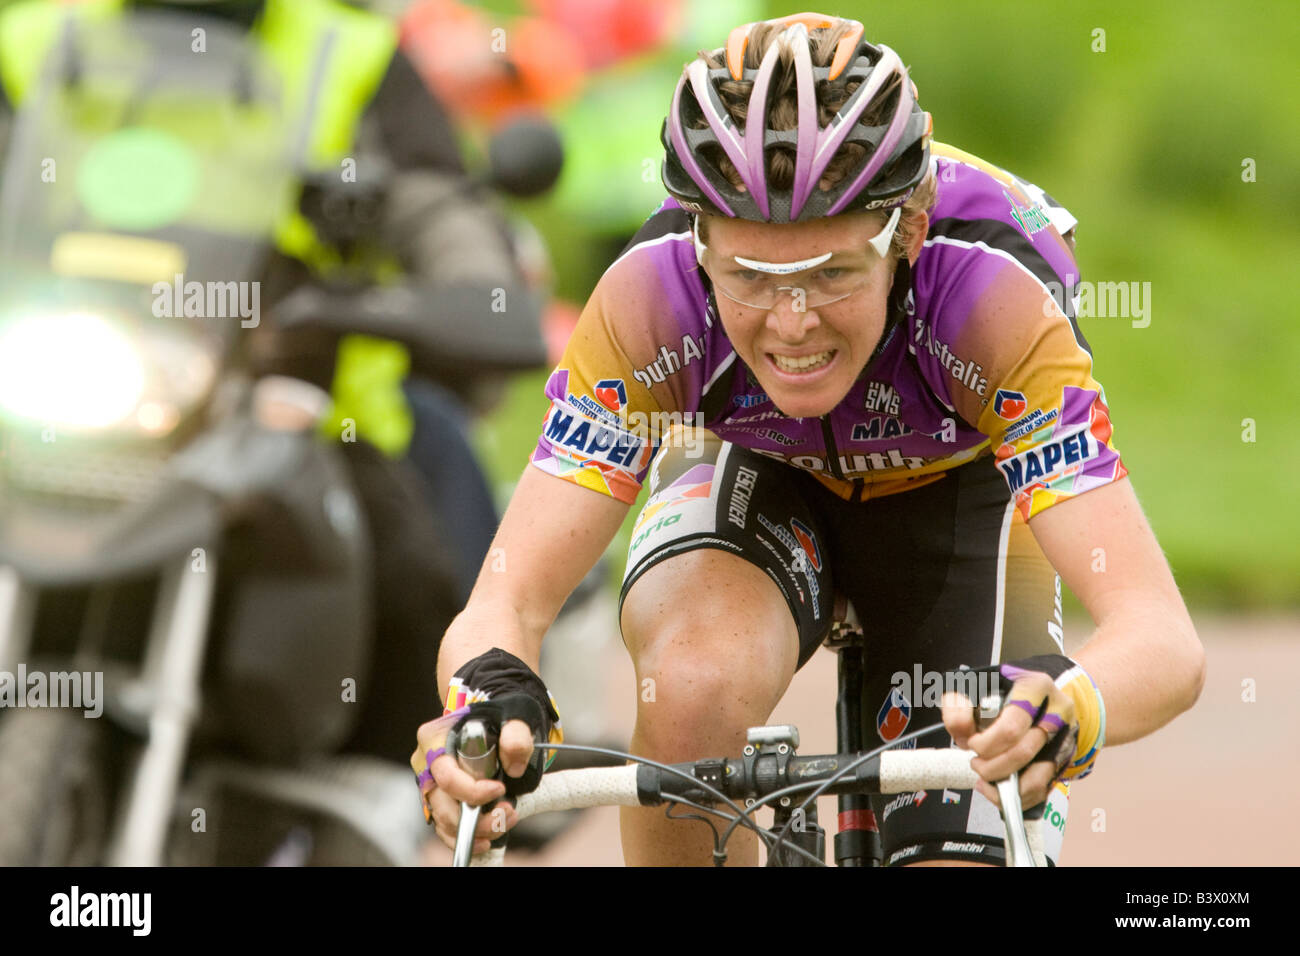 Tour of Britain cycle race rider gritting teeth as he races for finishing line at Drumlanrig Castle Scotland UK - Stock Image